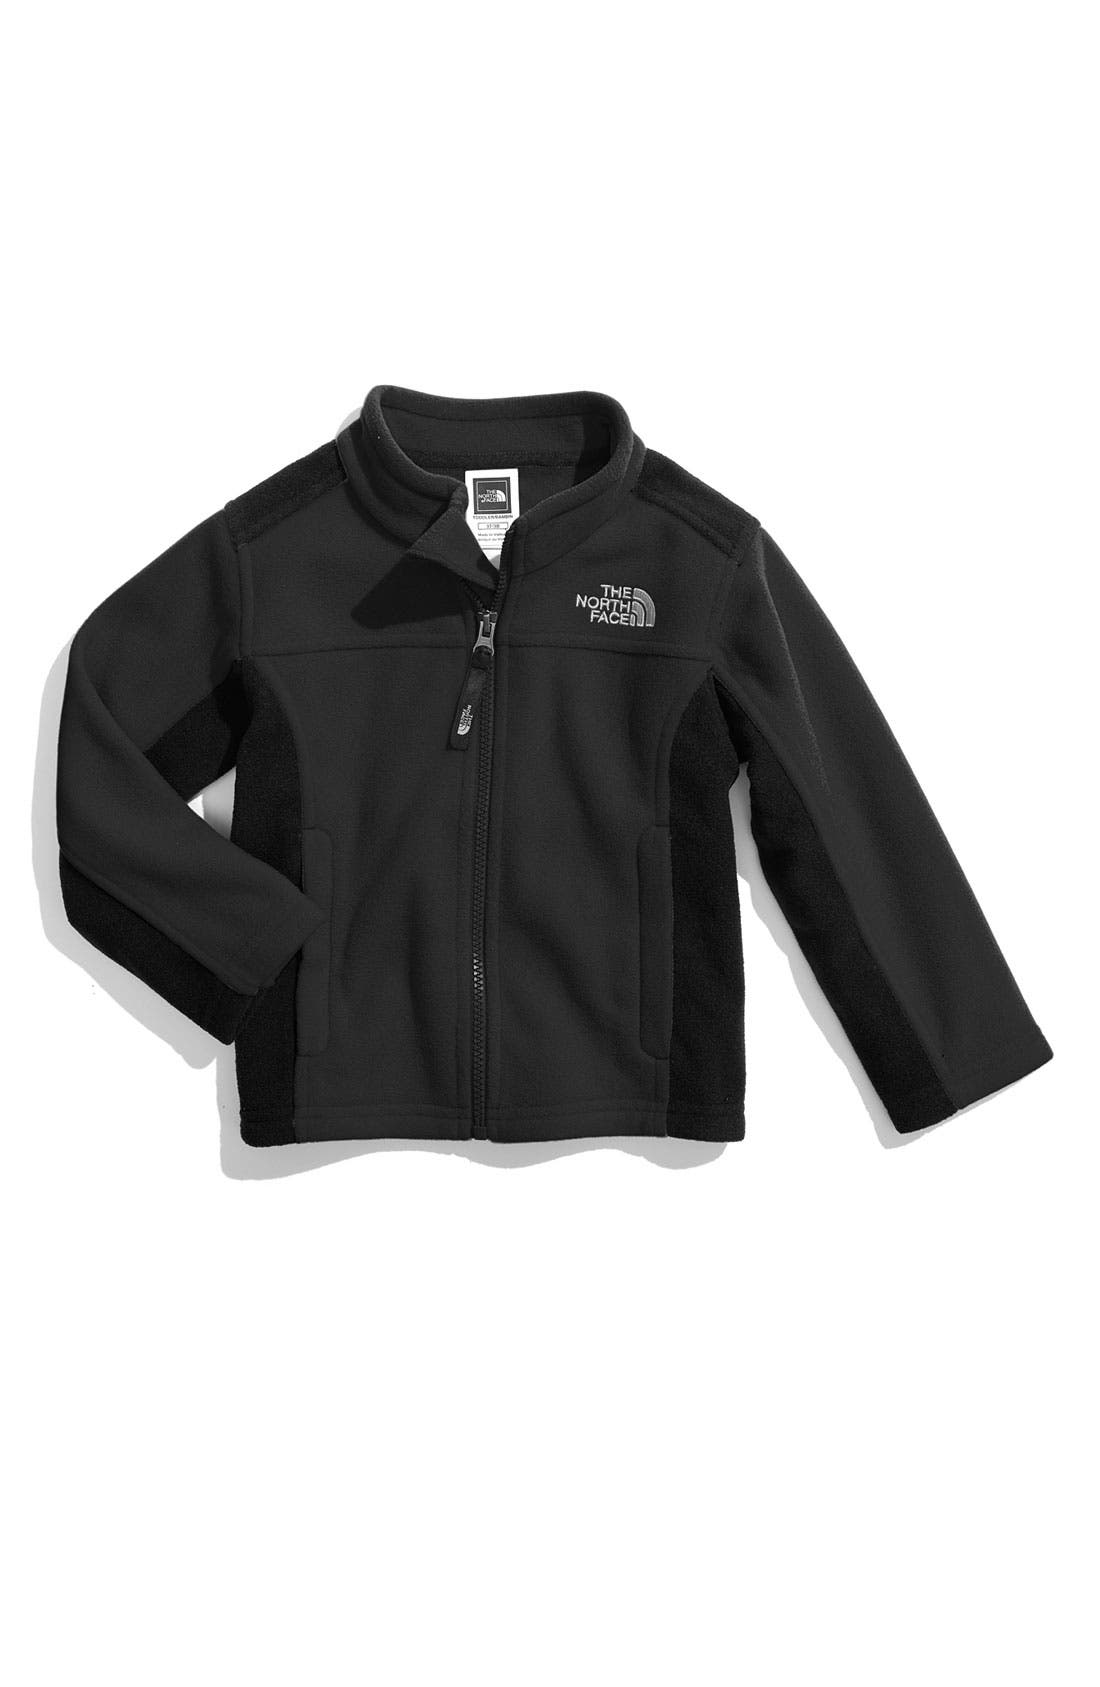 Alternate Image 1 Selected - The North Face 'Khumbu' Fleece Jacket (Toddler)